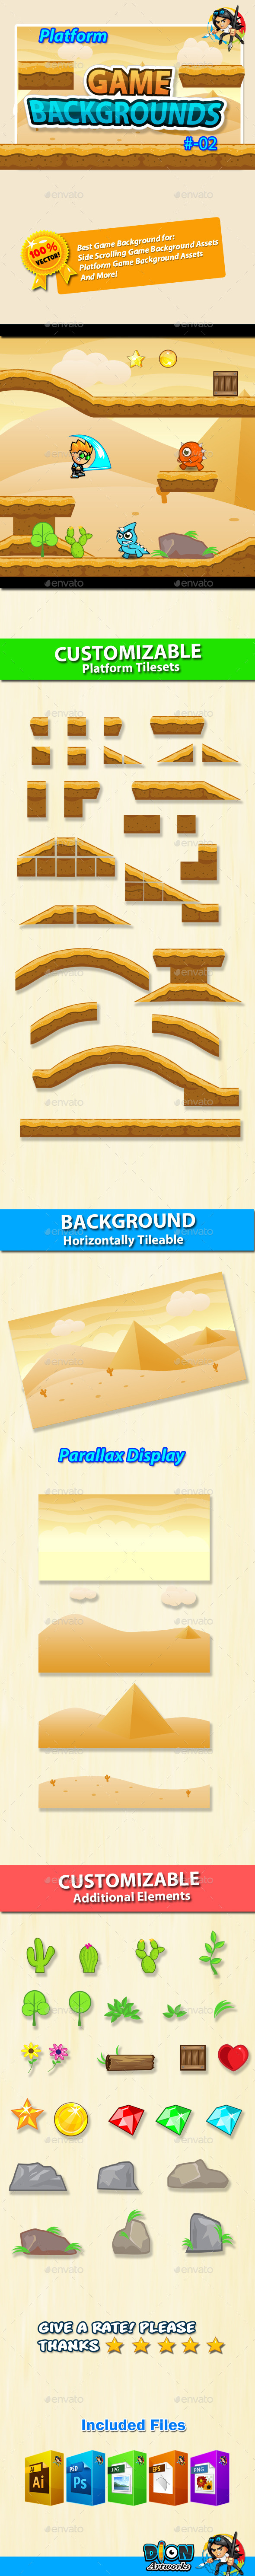 GraphicRiver Game Background Platform Tilesets 02 10538940